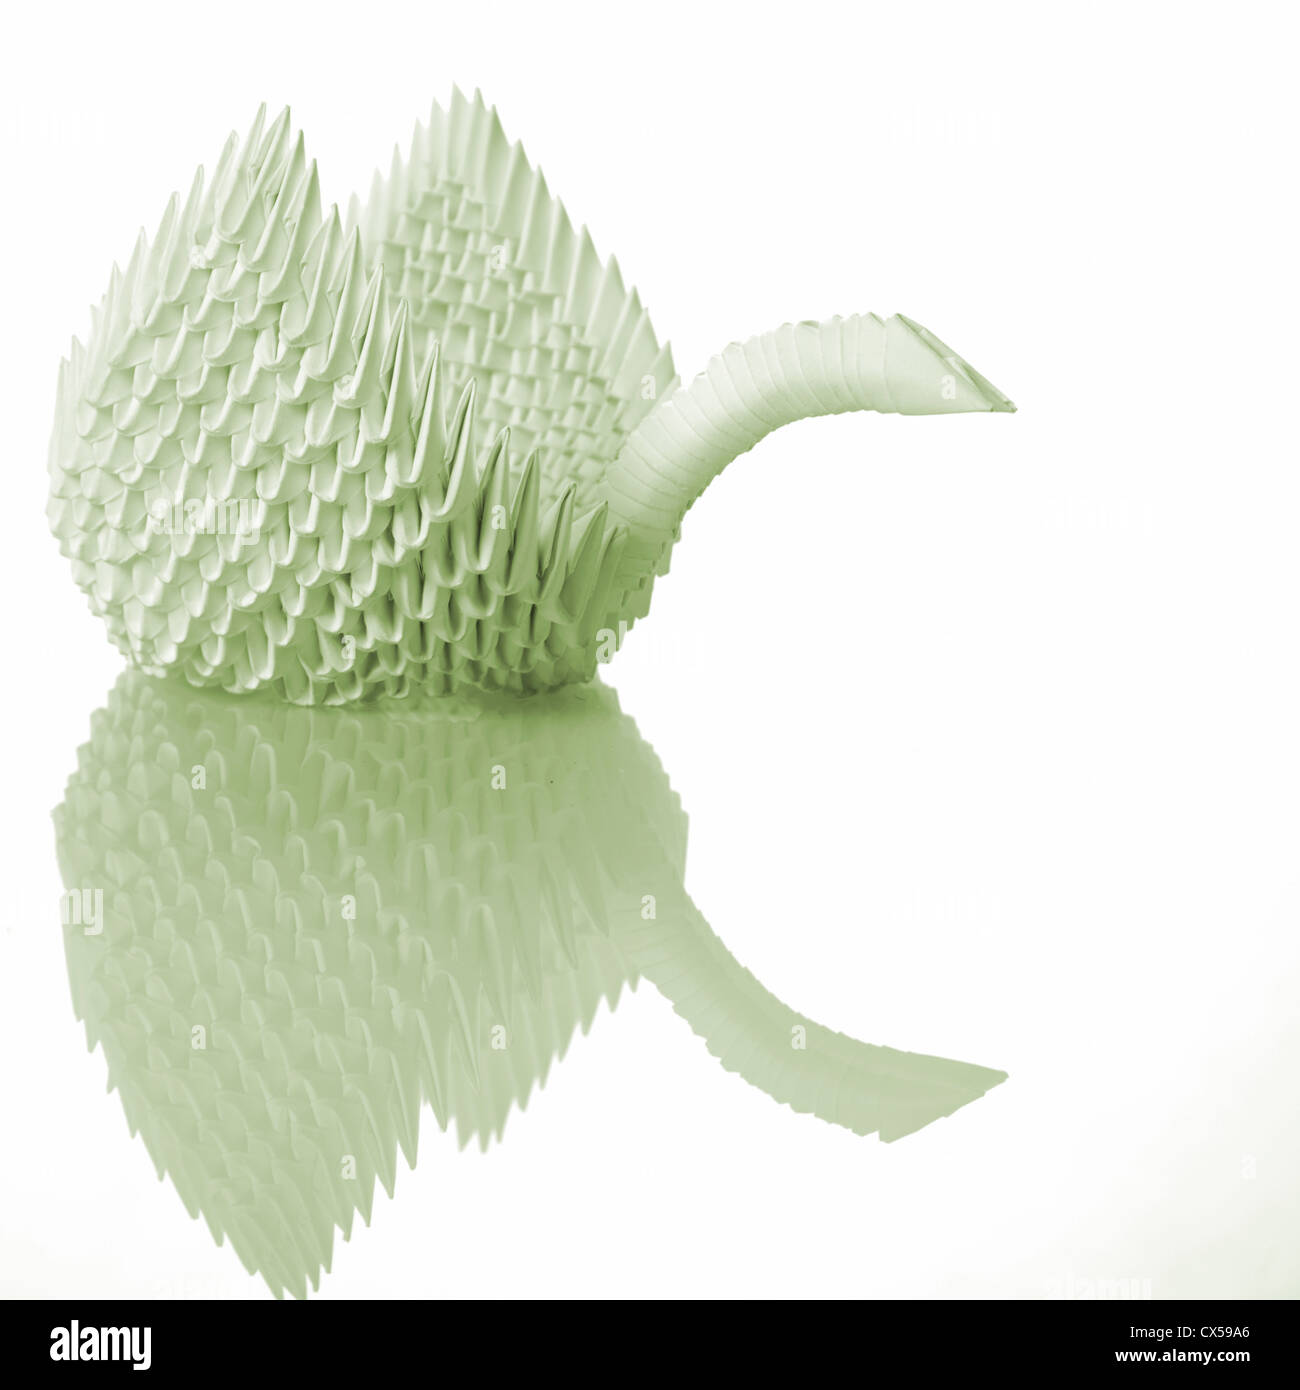 Origami art swan on table with reflection - Stock Image